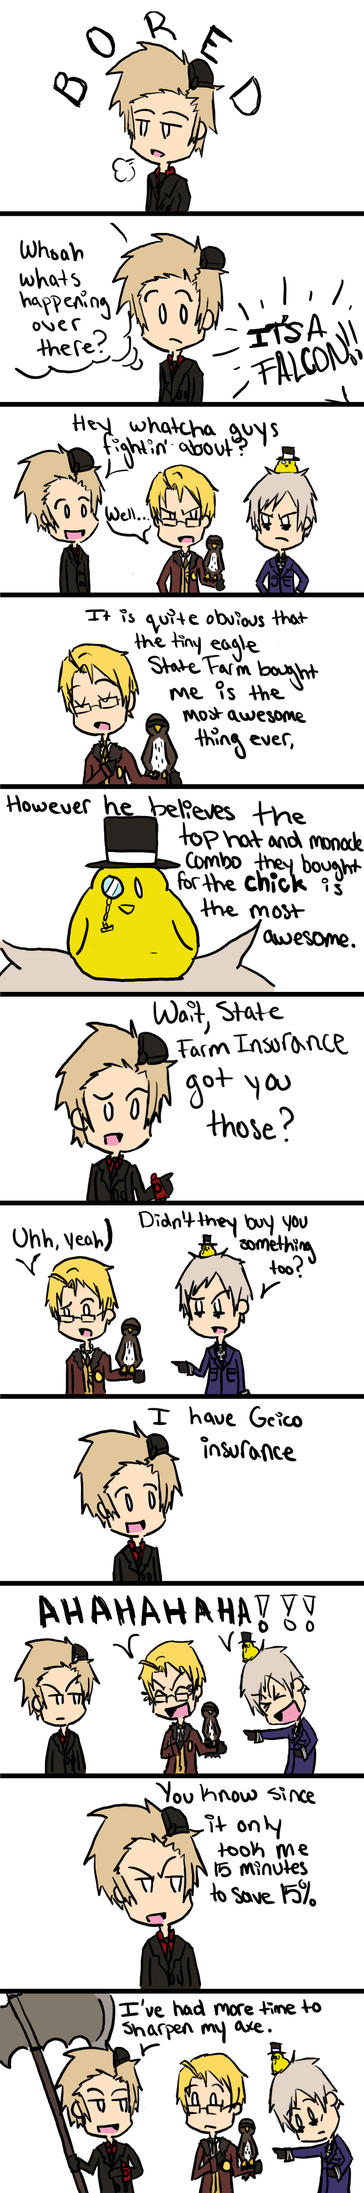 Insurance by Fullmetalpoz